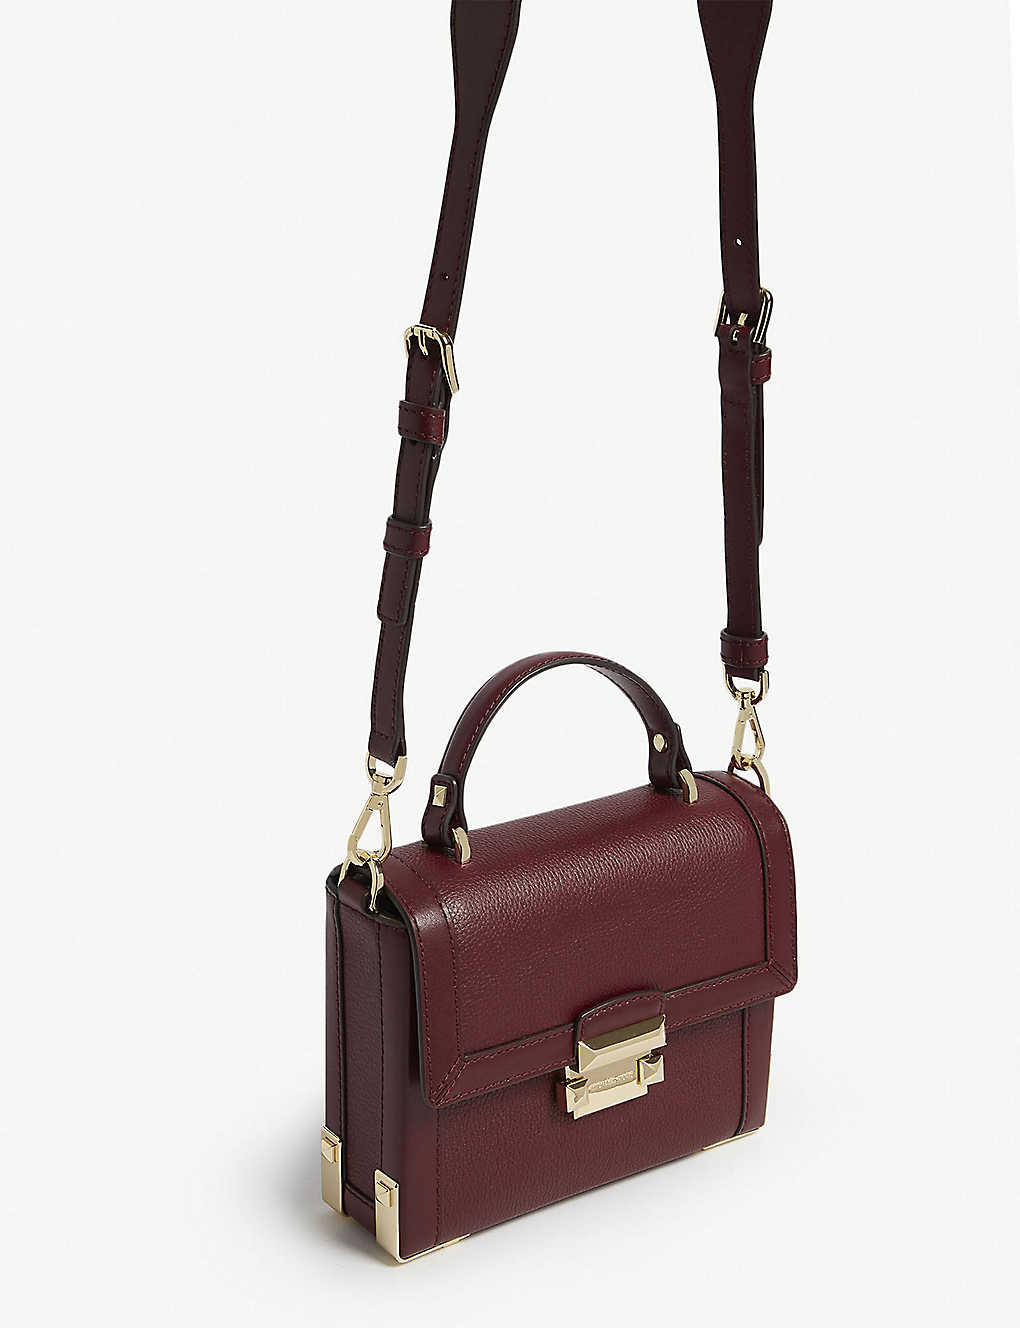 72dd627aeee5 MICHAEL MICHAEL KORS - Jayne pebbled leather trunk bag